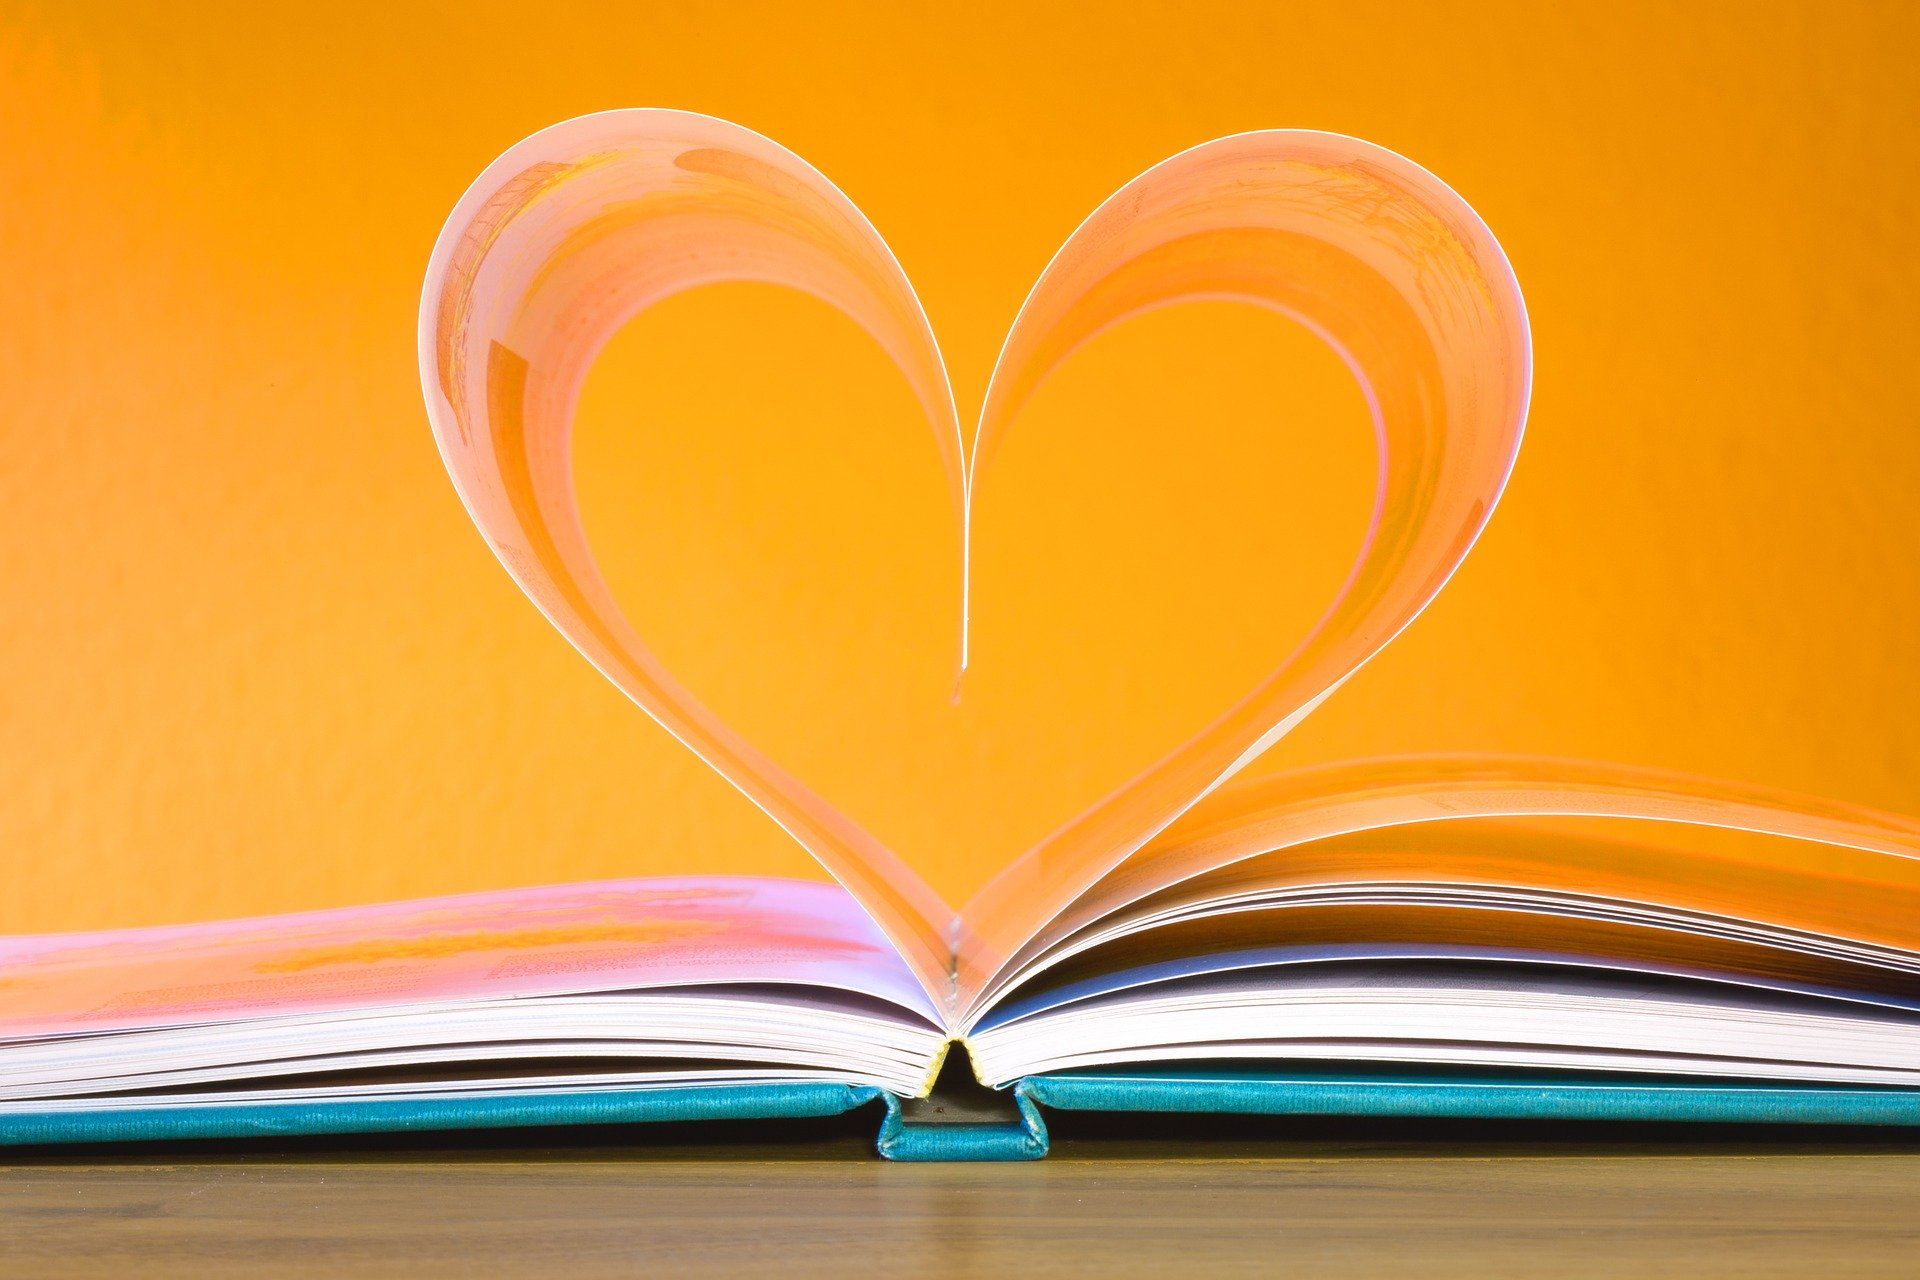 Image of an open book with the pages curled to form a love heart